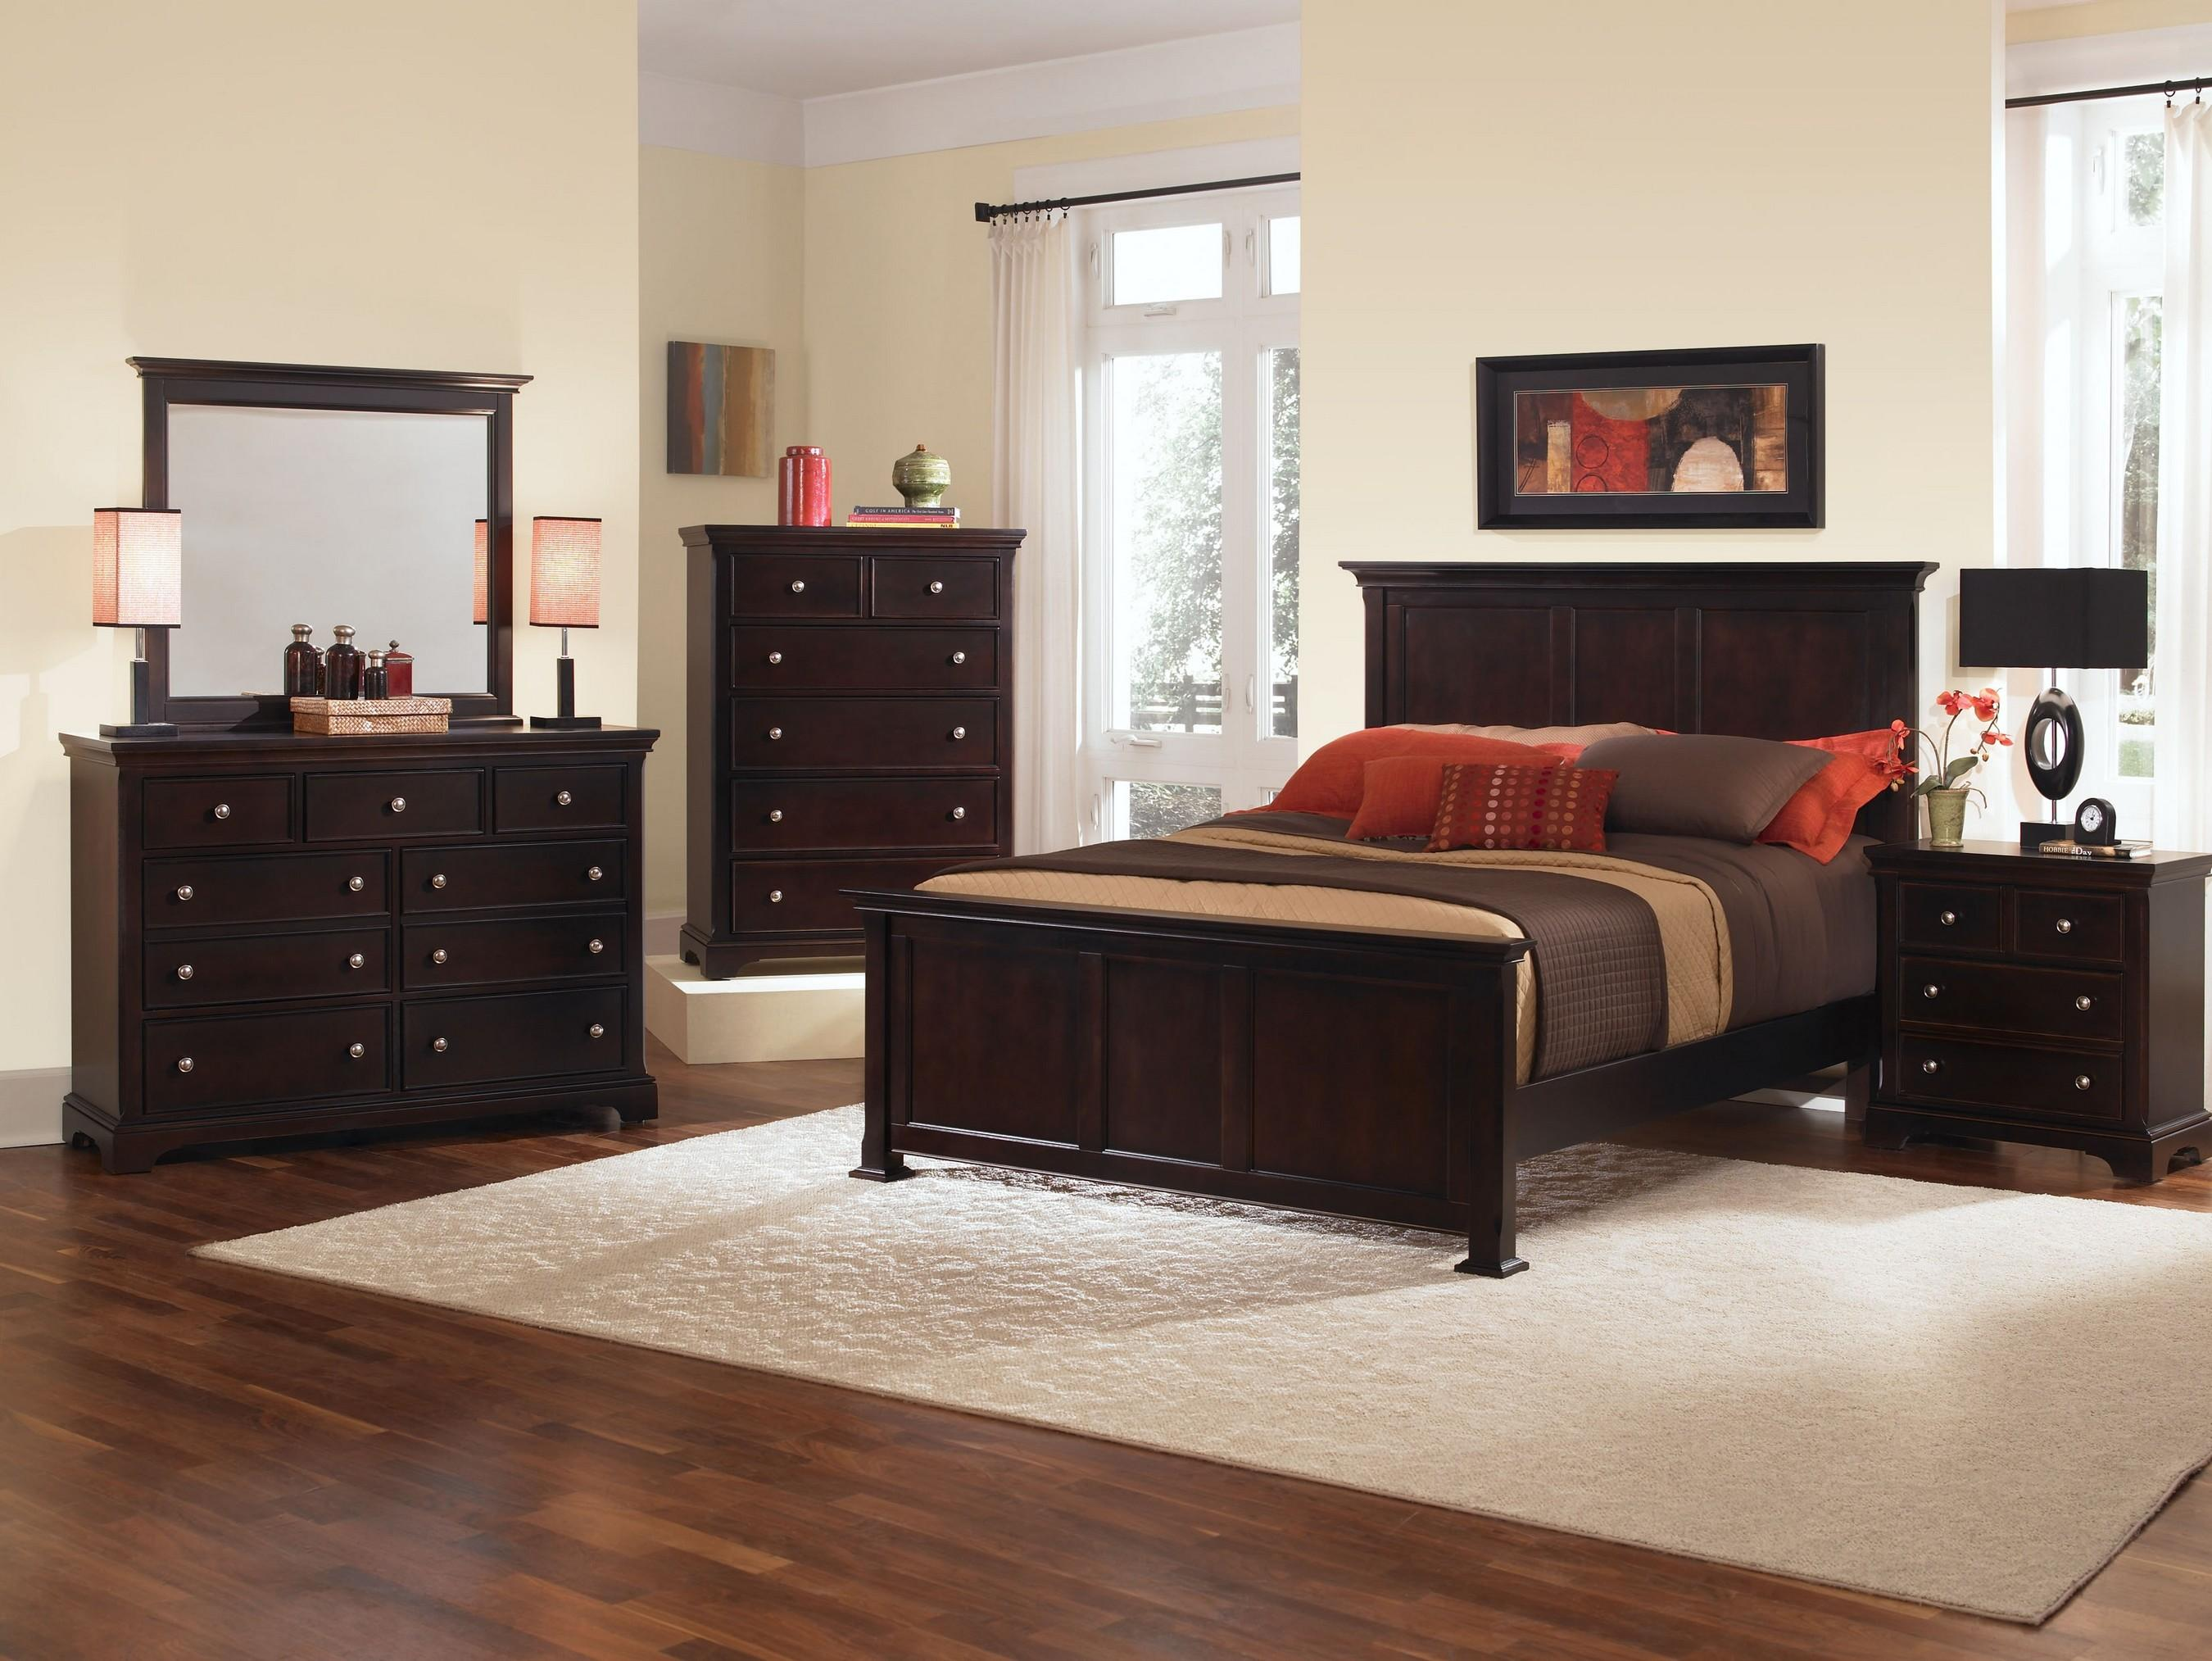 Vaughan Bassett Forsyth Queen Bedroom Group - Item Number: BB76 Q Bedroom Group 1